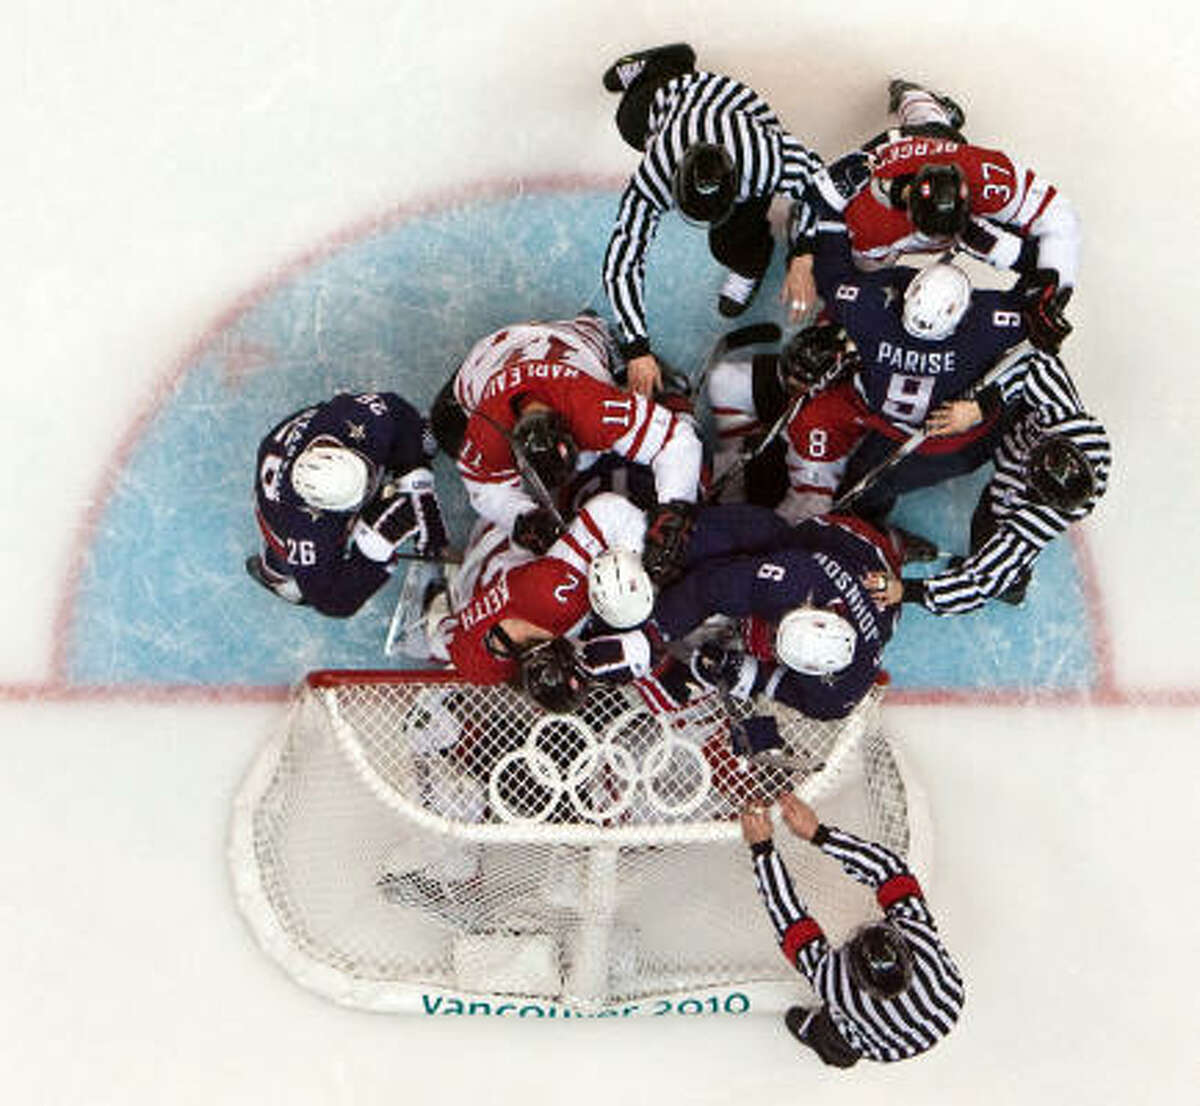 Officials rush in to break up a shoving match in front of Canada goalie Roberto Luongo during the men's ice hockey gold medal game.